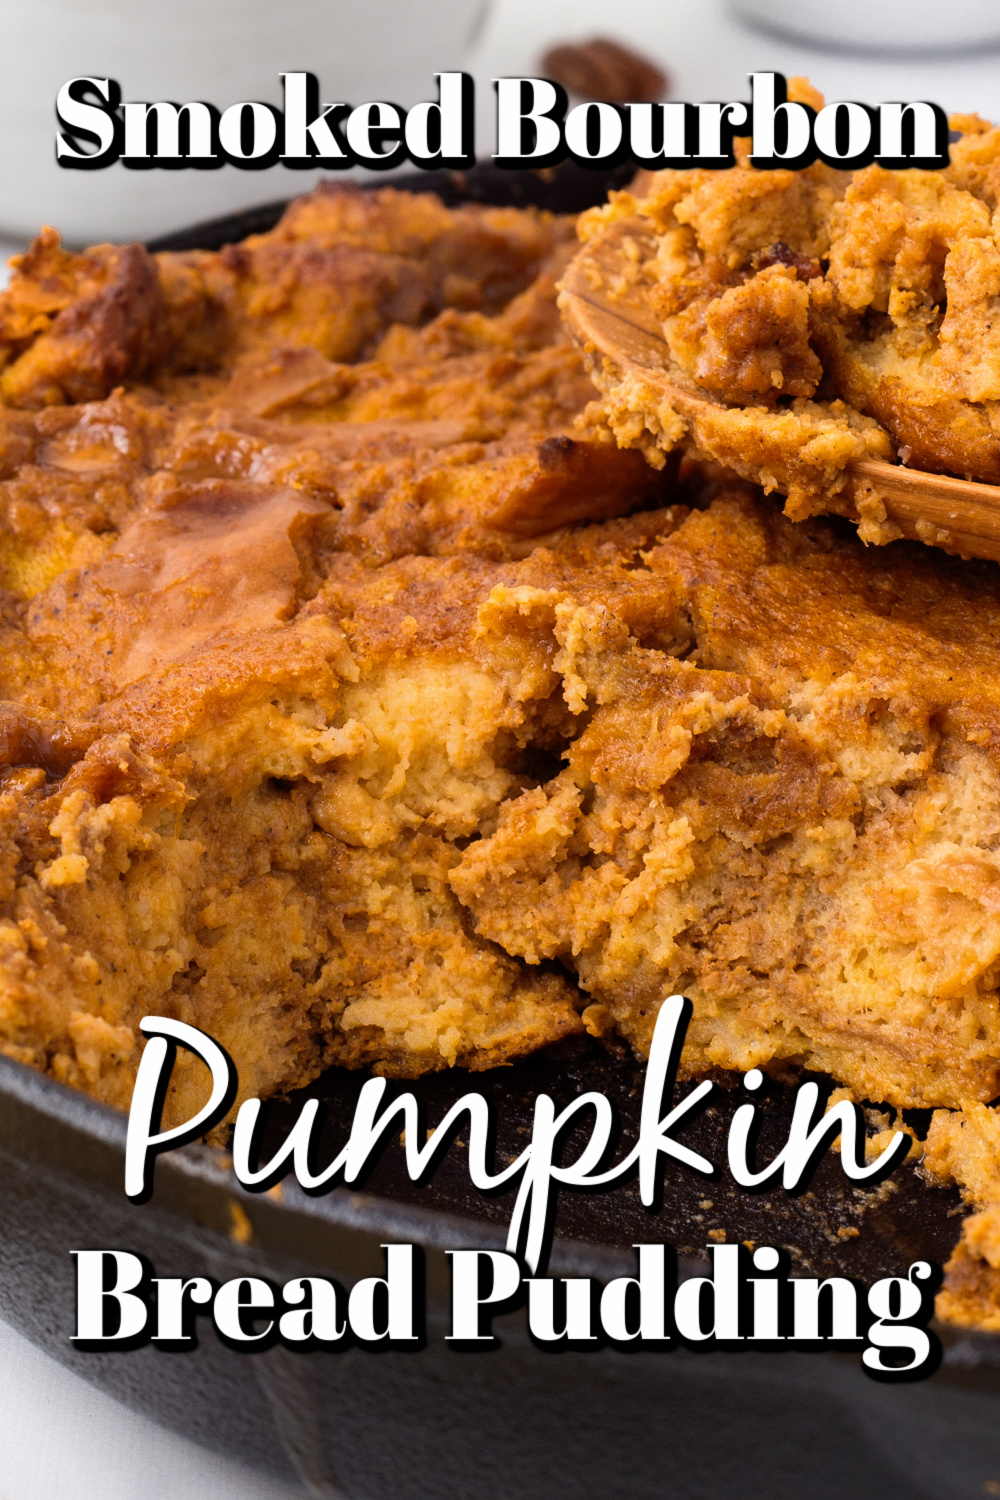 This smoked bourbon pumpkin bread pudding has a subtle smoky flavor, and all the sweet taste of a bread pudding with a pumpkin twist and the caramel sauce puts it over the top!